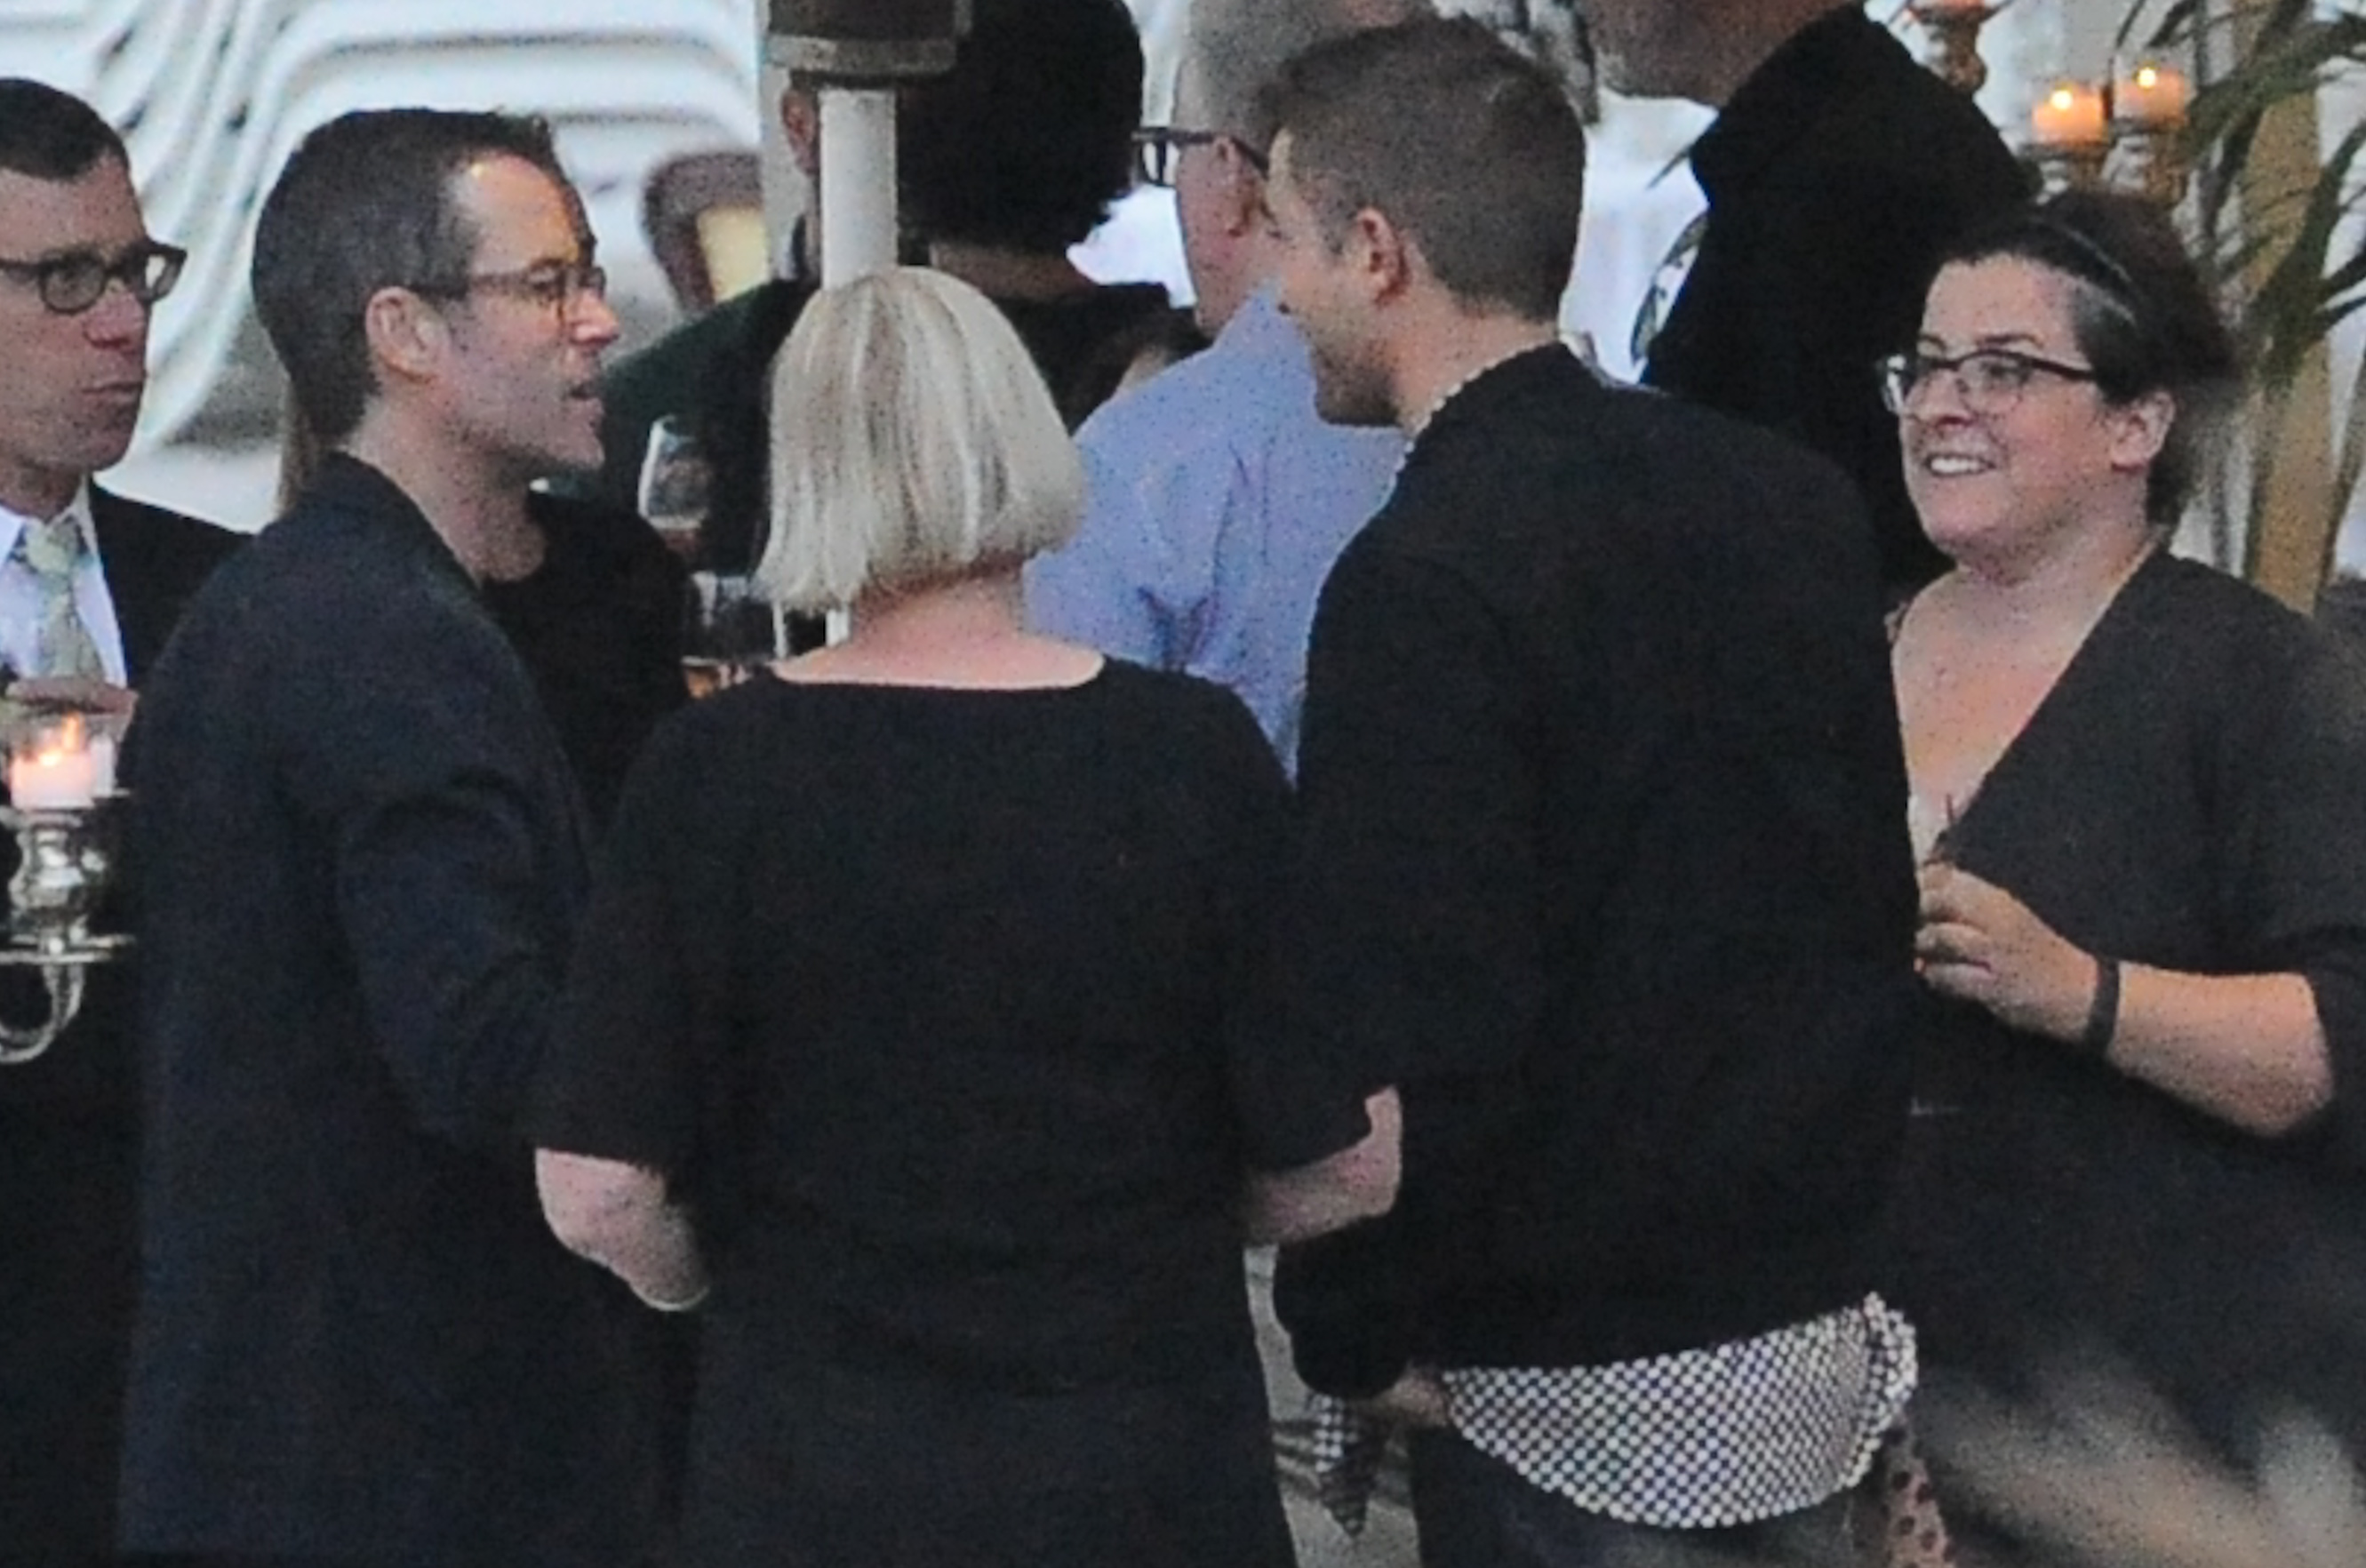 Robert Pattinson, Guy Pearce and Kate Mestitz are seen going for dinner in Cannes